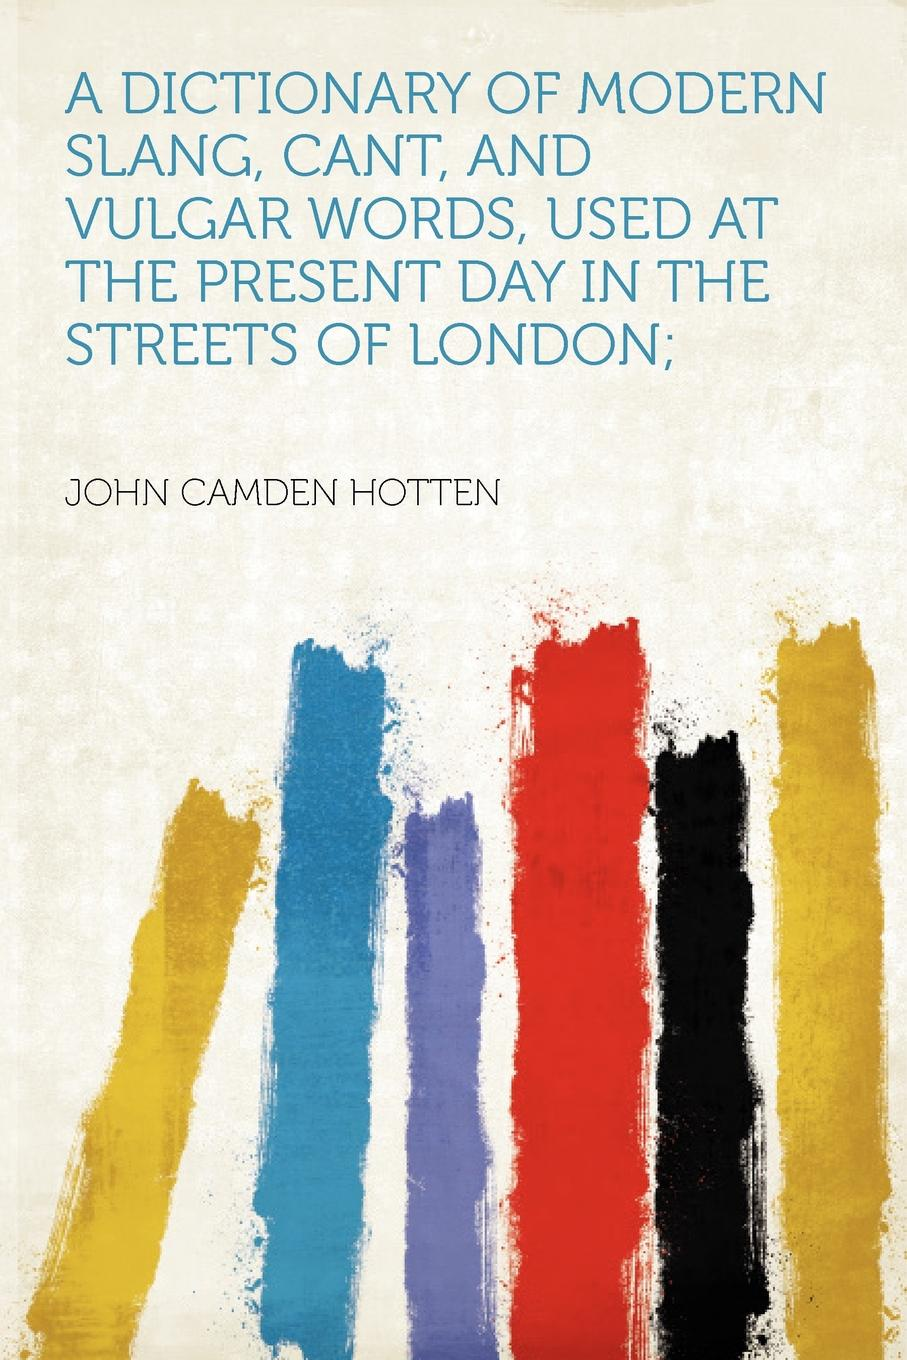 A Dictionary of Modern Slang, Cant, and Vulgar Words, Used at the Present Day in the Streets of London;